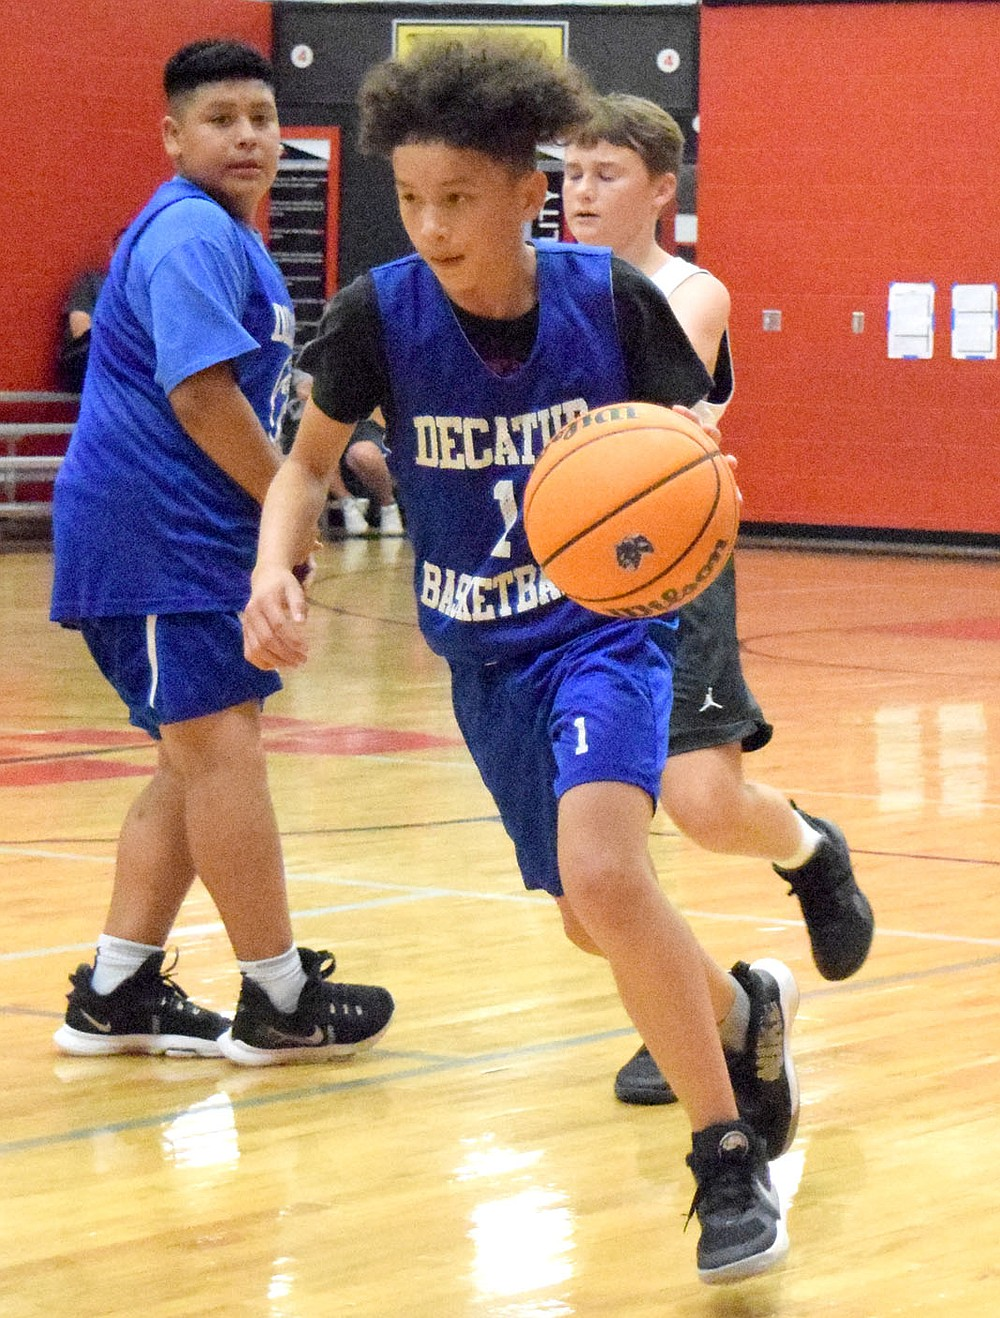 Westside Eagle Observer/MIKE ECKELS Alan Medel (left) puts up a perfect screen which allowed Ricky Thor (center) to get around a Maverick defender during the June 8 junior high contest between Decatur and Fort Smith Southside in Fayetteville. The Mavericks took the win in the Arkansas Athletics Outreach team camp 26-4 over the Bulldogs.